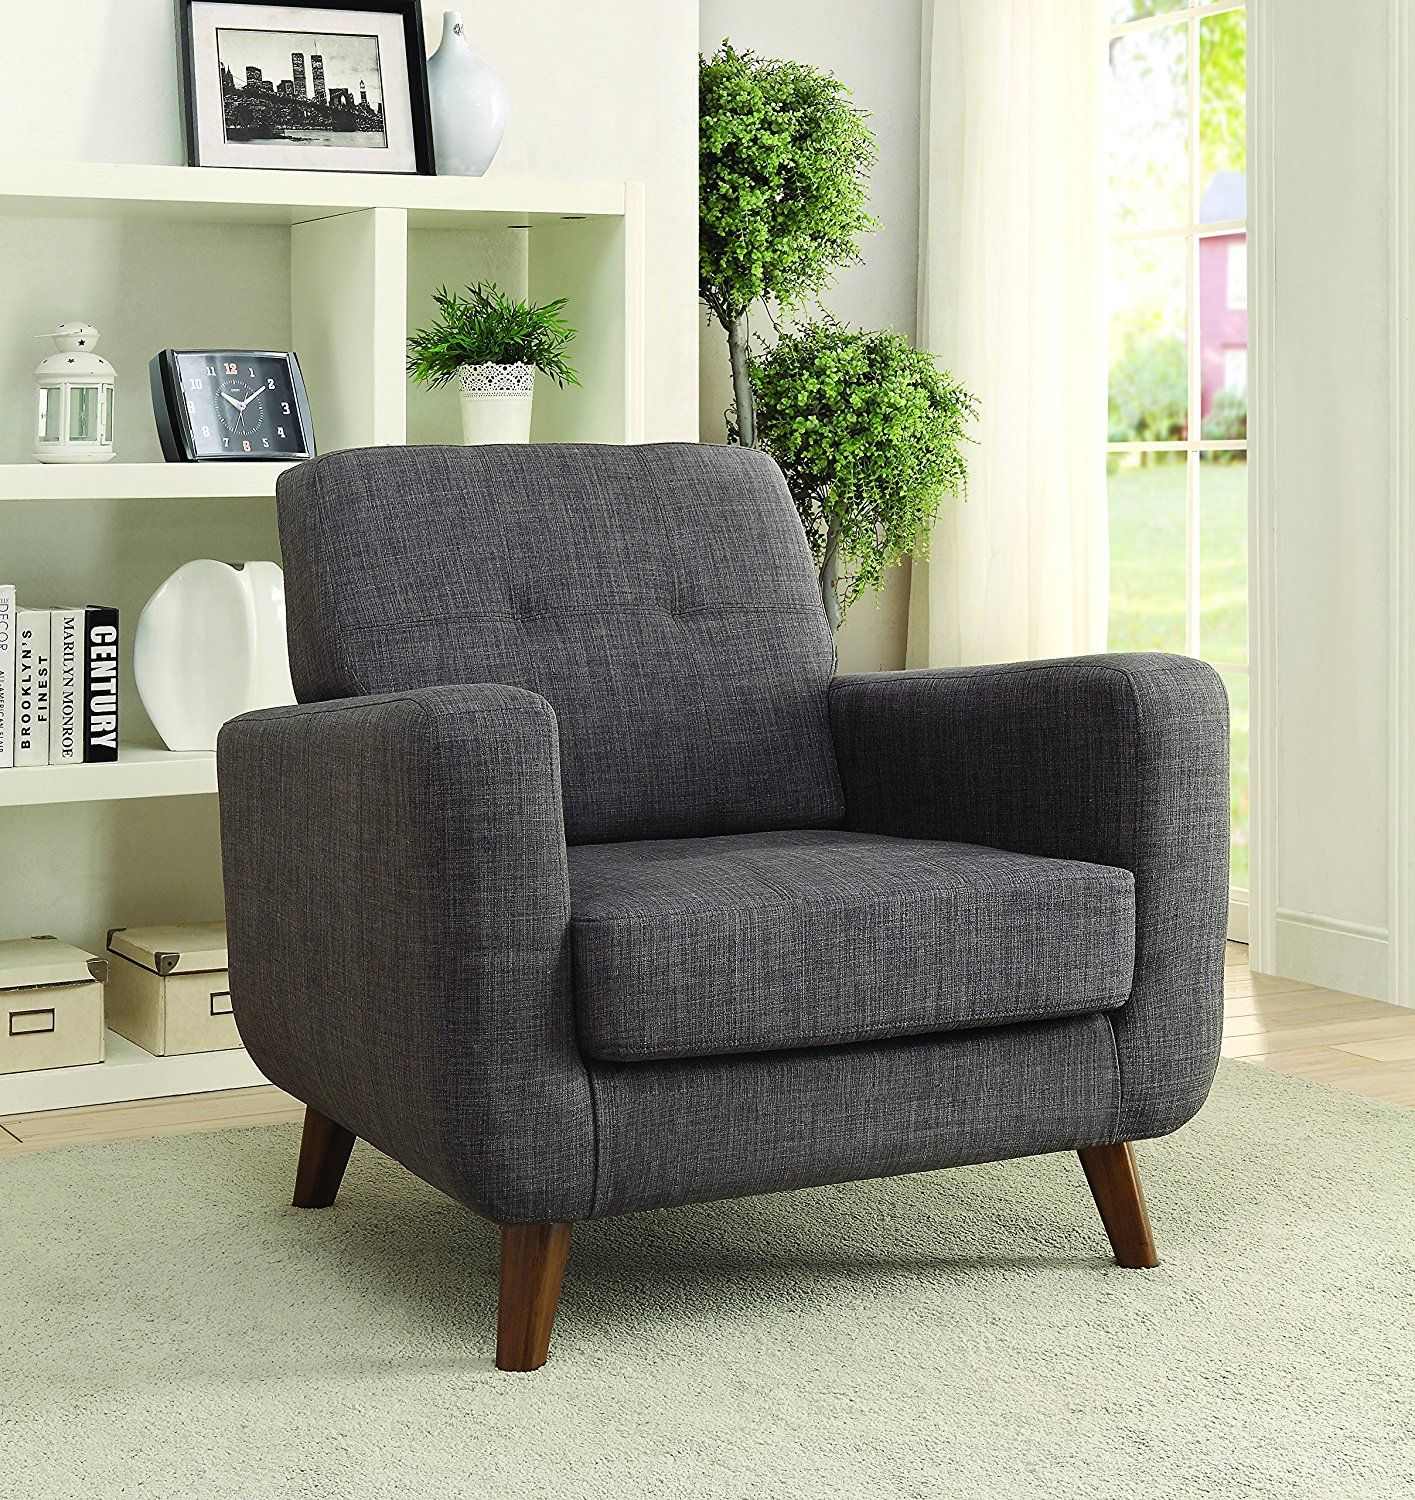 Amazon Com Coaster Home Furnishings 902481 Accent Chair Null Grey Kitchen